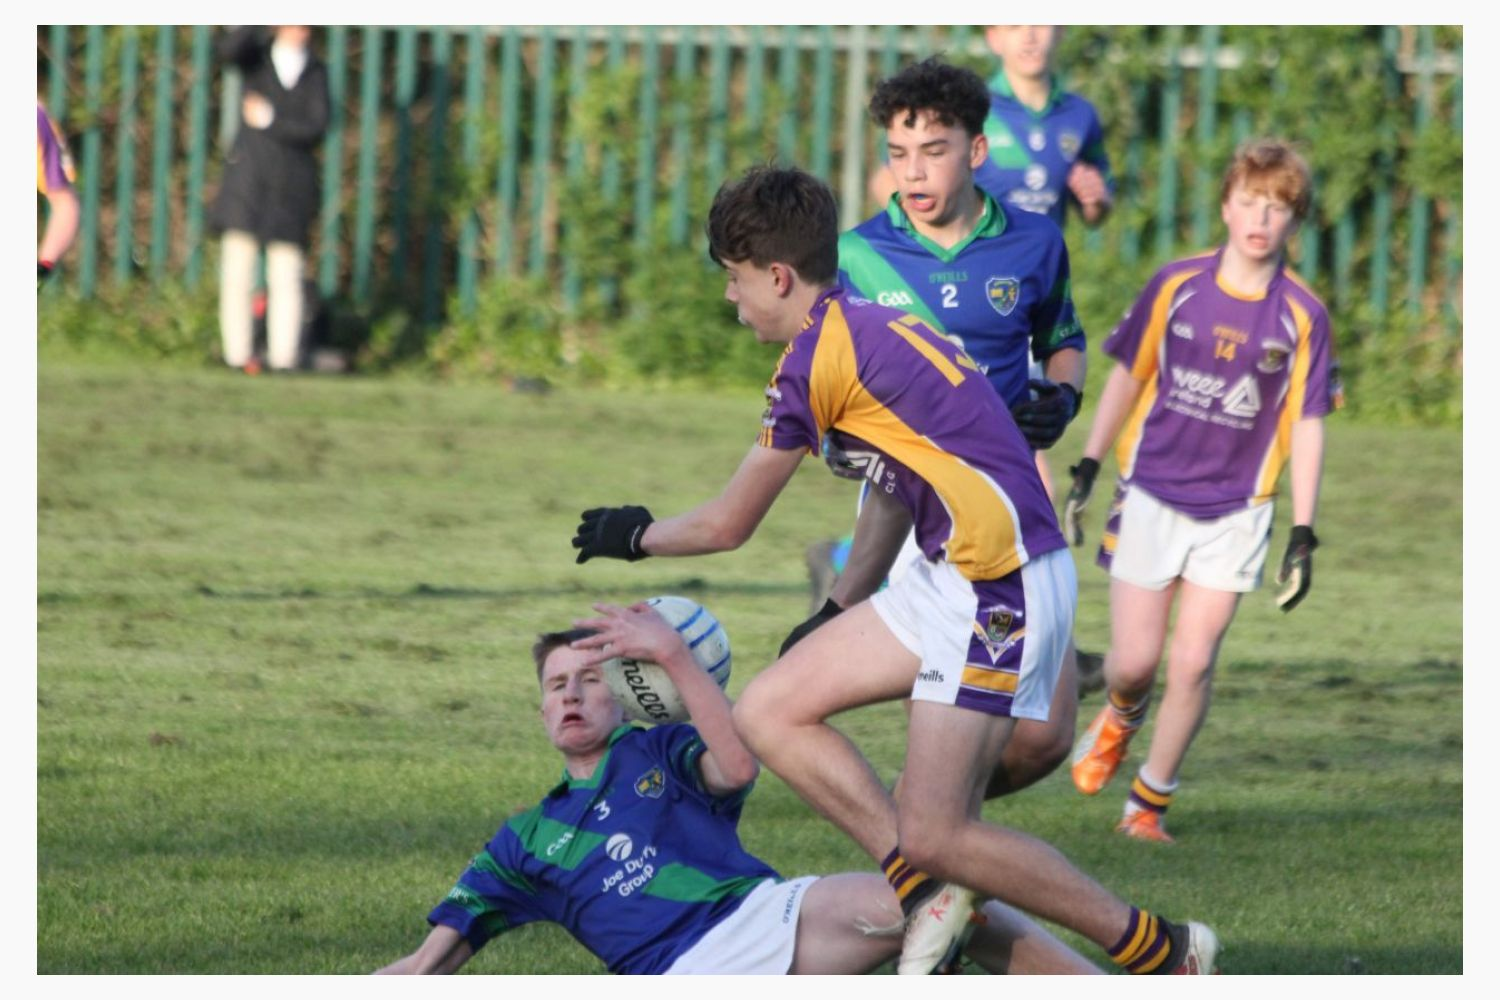 Kilmacud Crokes Under 15A Footballers Championship Semi Final Win